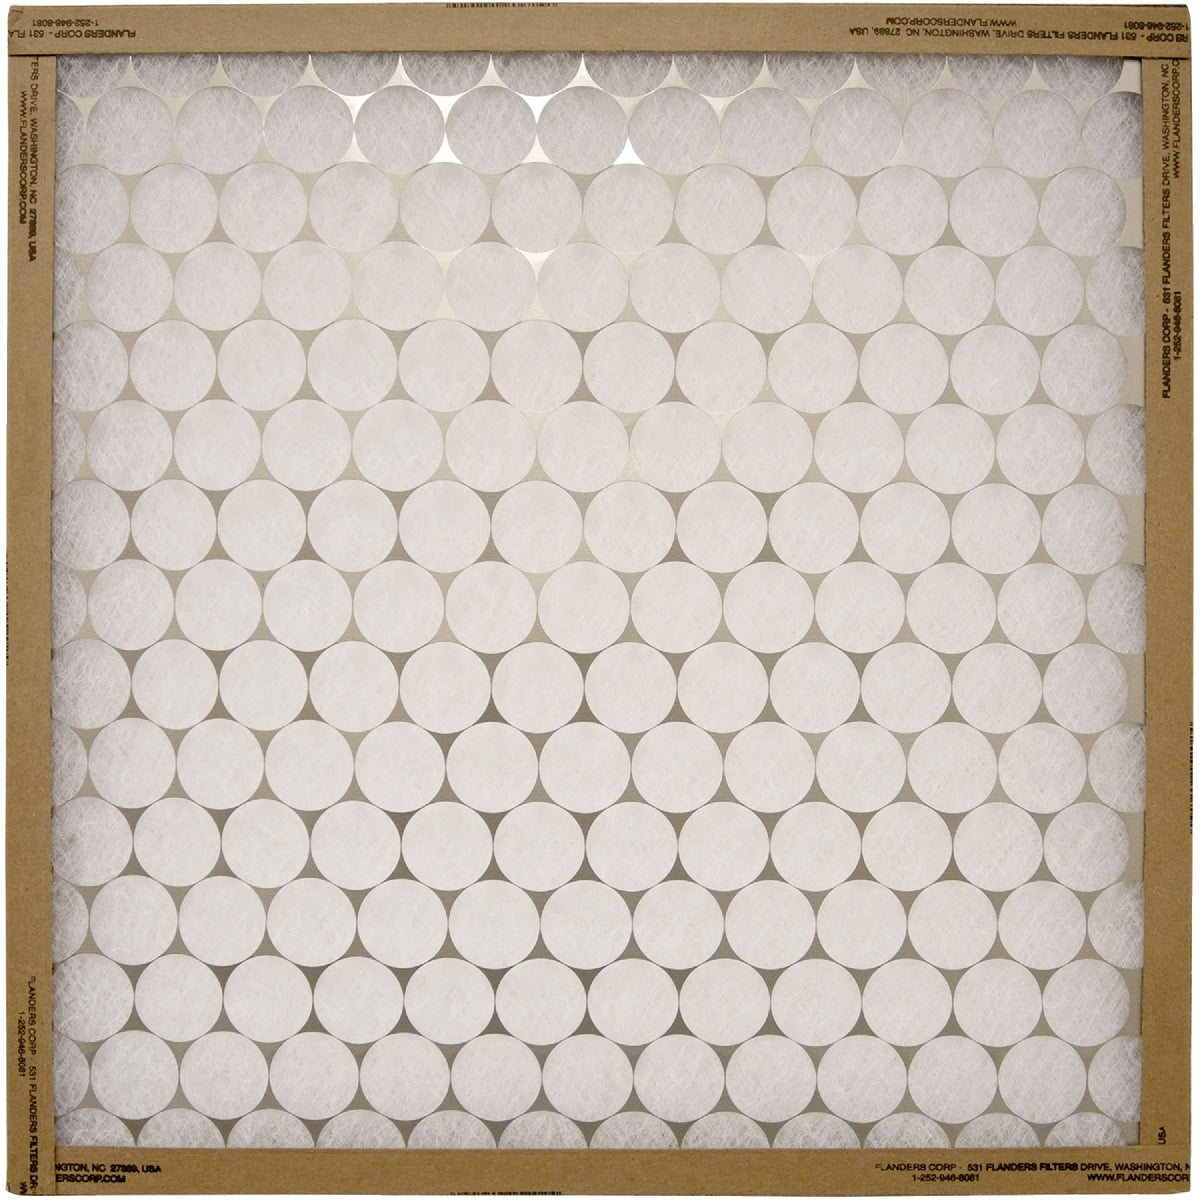 12X20 FURNACE FILTER - 10255.011220 by Flanders Corp